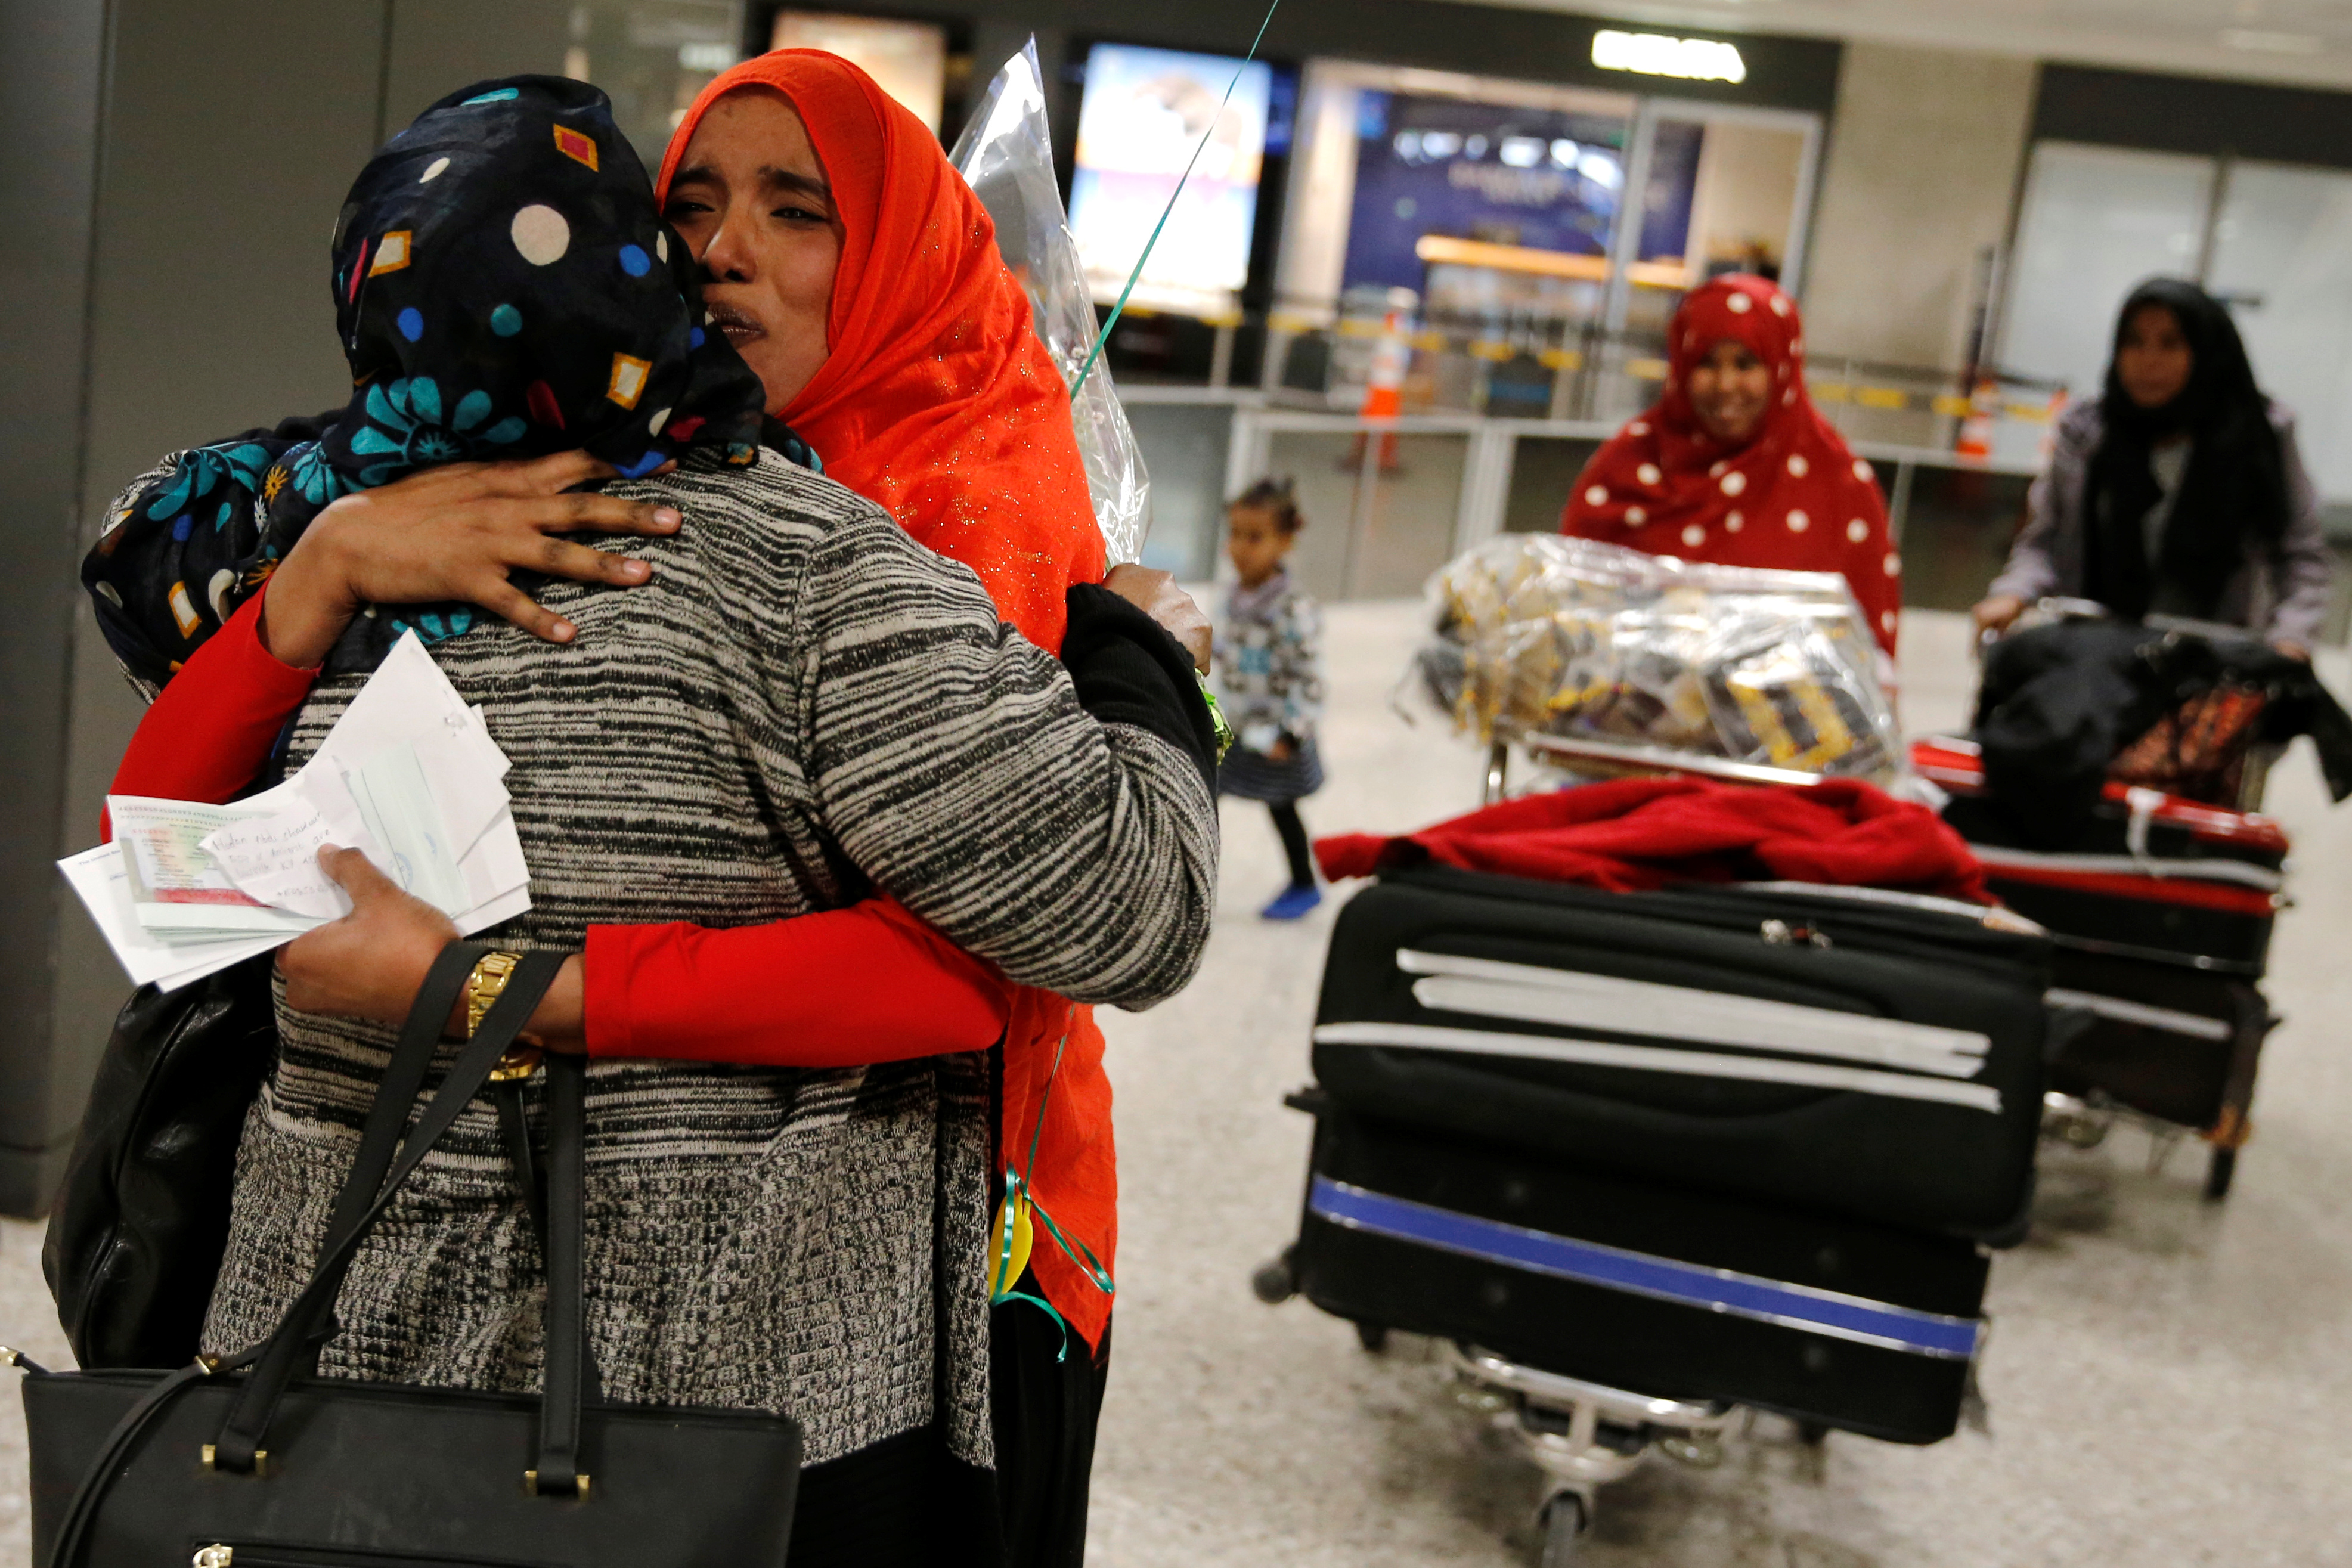 Najmia Abdishakur (2nd L), a Somali national who was delayed entry to the U.S. because of the recent travel ban, is greeted by her mother Zahra Warsma (L) at Washington Dulles International Airport in Chantilly, Virginia, U.S. February 6, 2017.